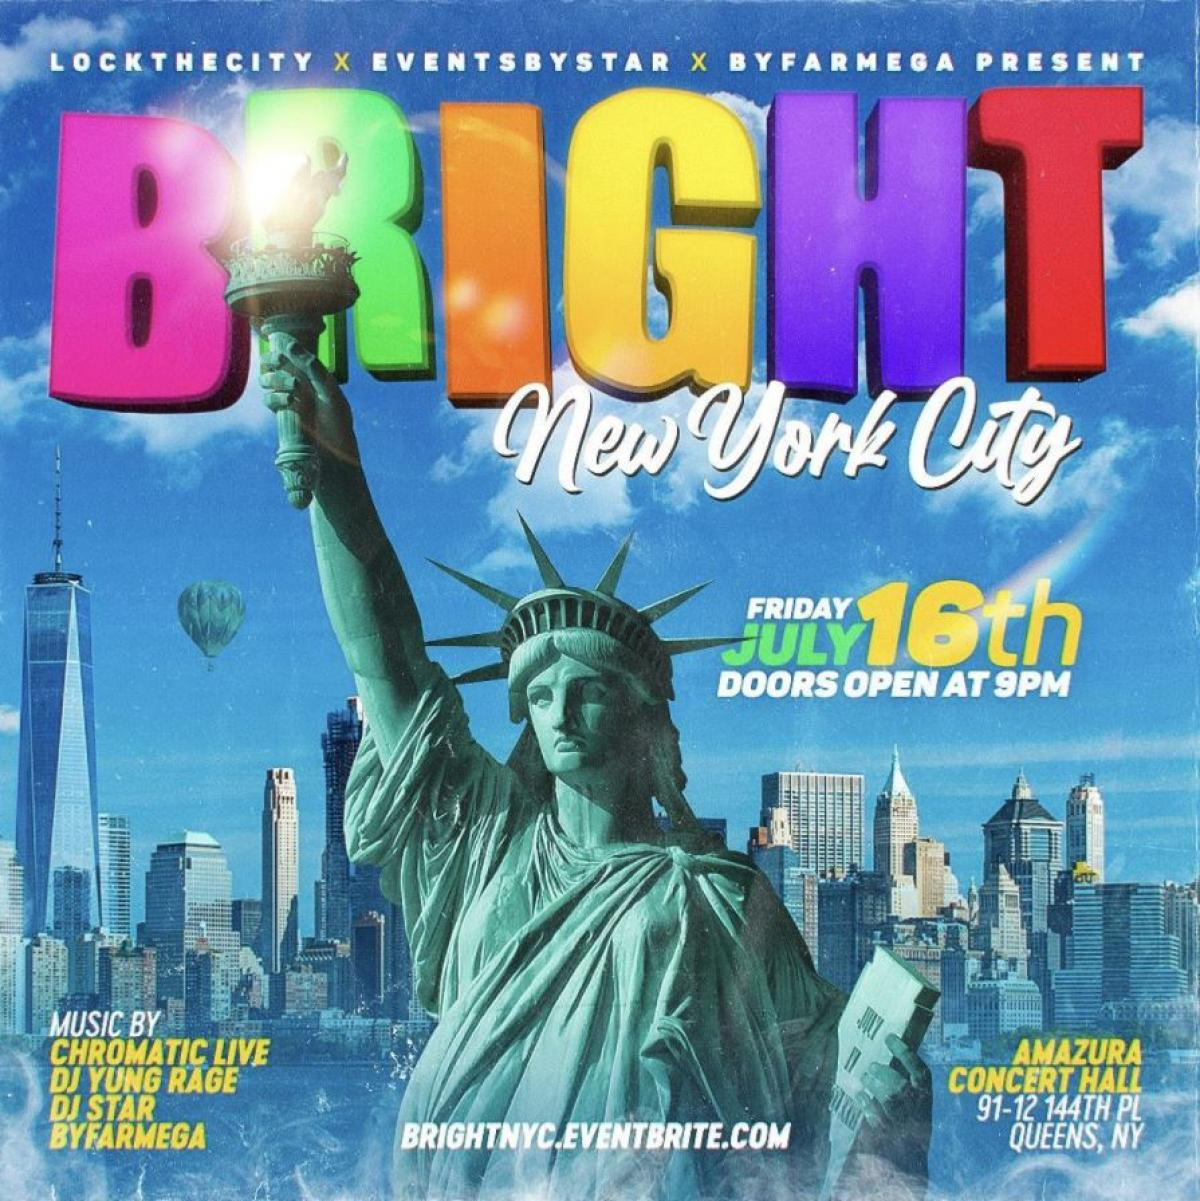 Bright NYC flyer or graphic.